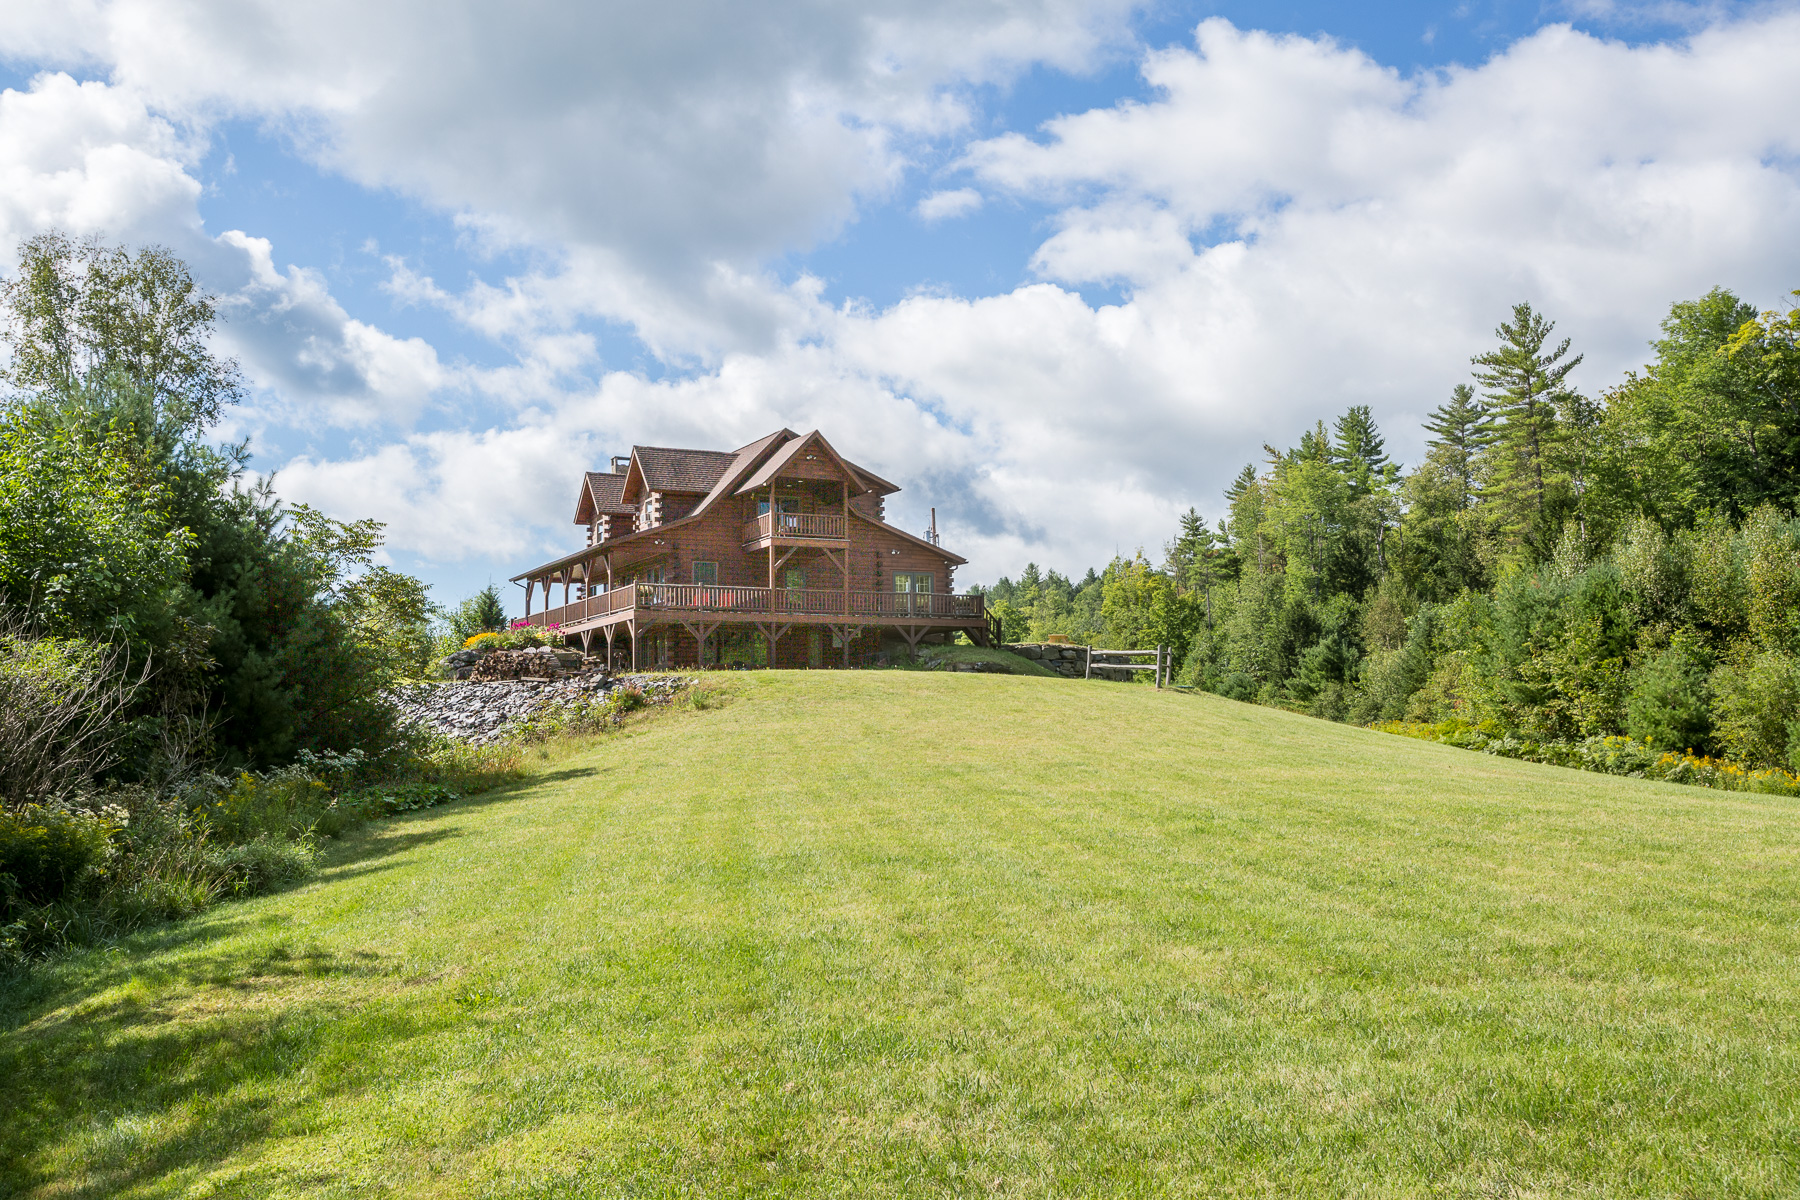 Single Family Home for Sale at 1703 Robinson Road, West Fairlee 1703 Robinson Rd West Fairlee, Vermont 05083 United States